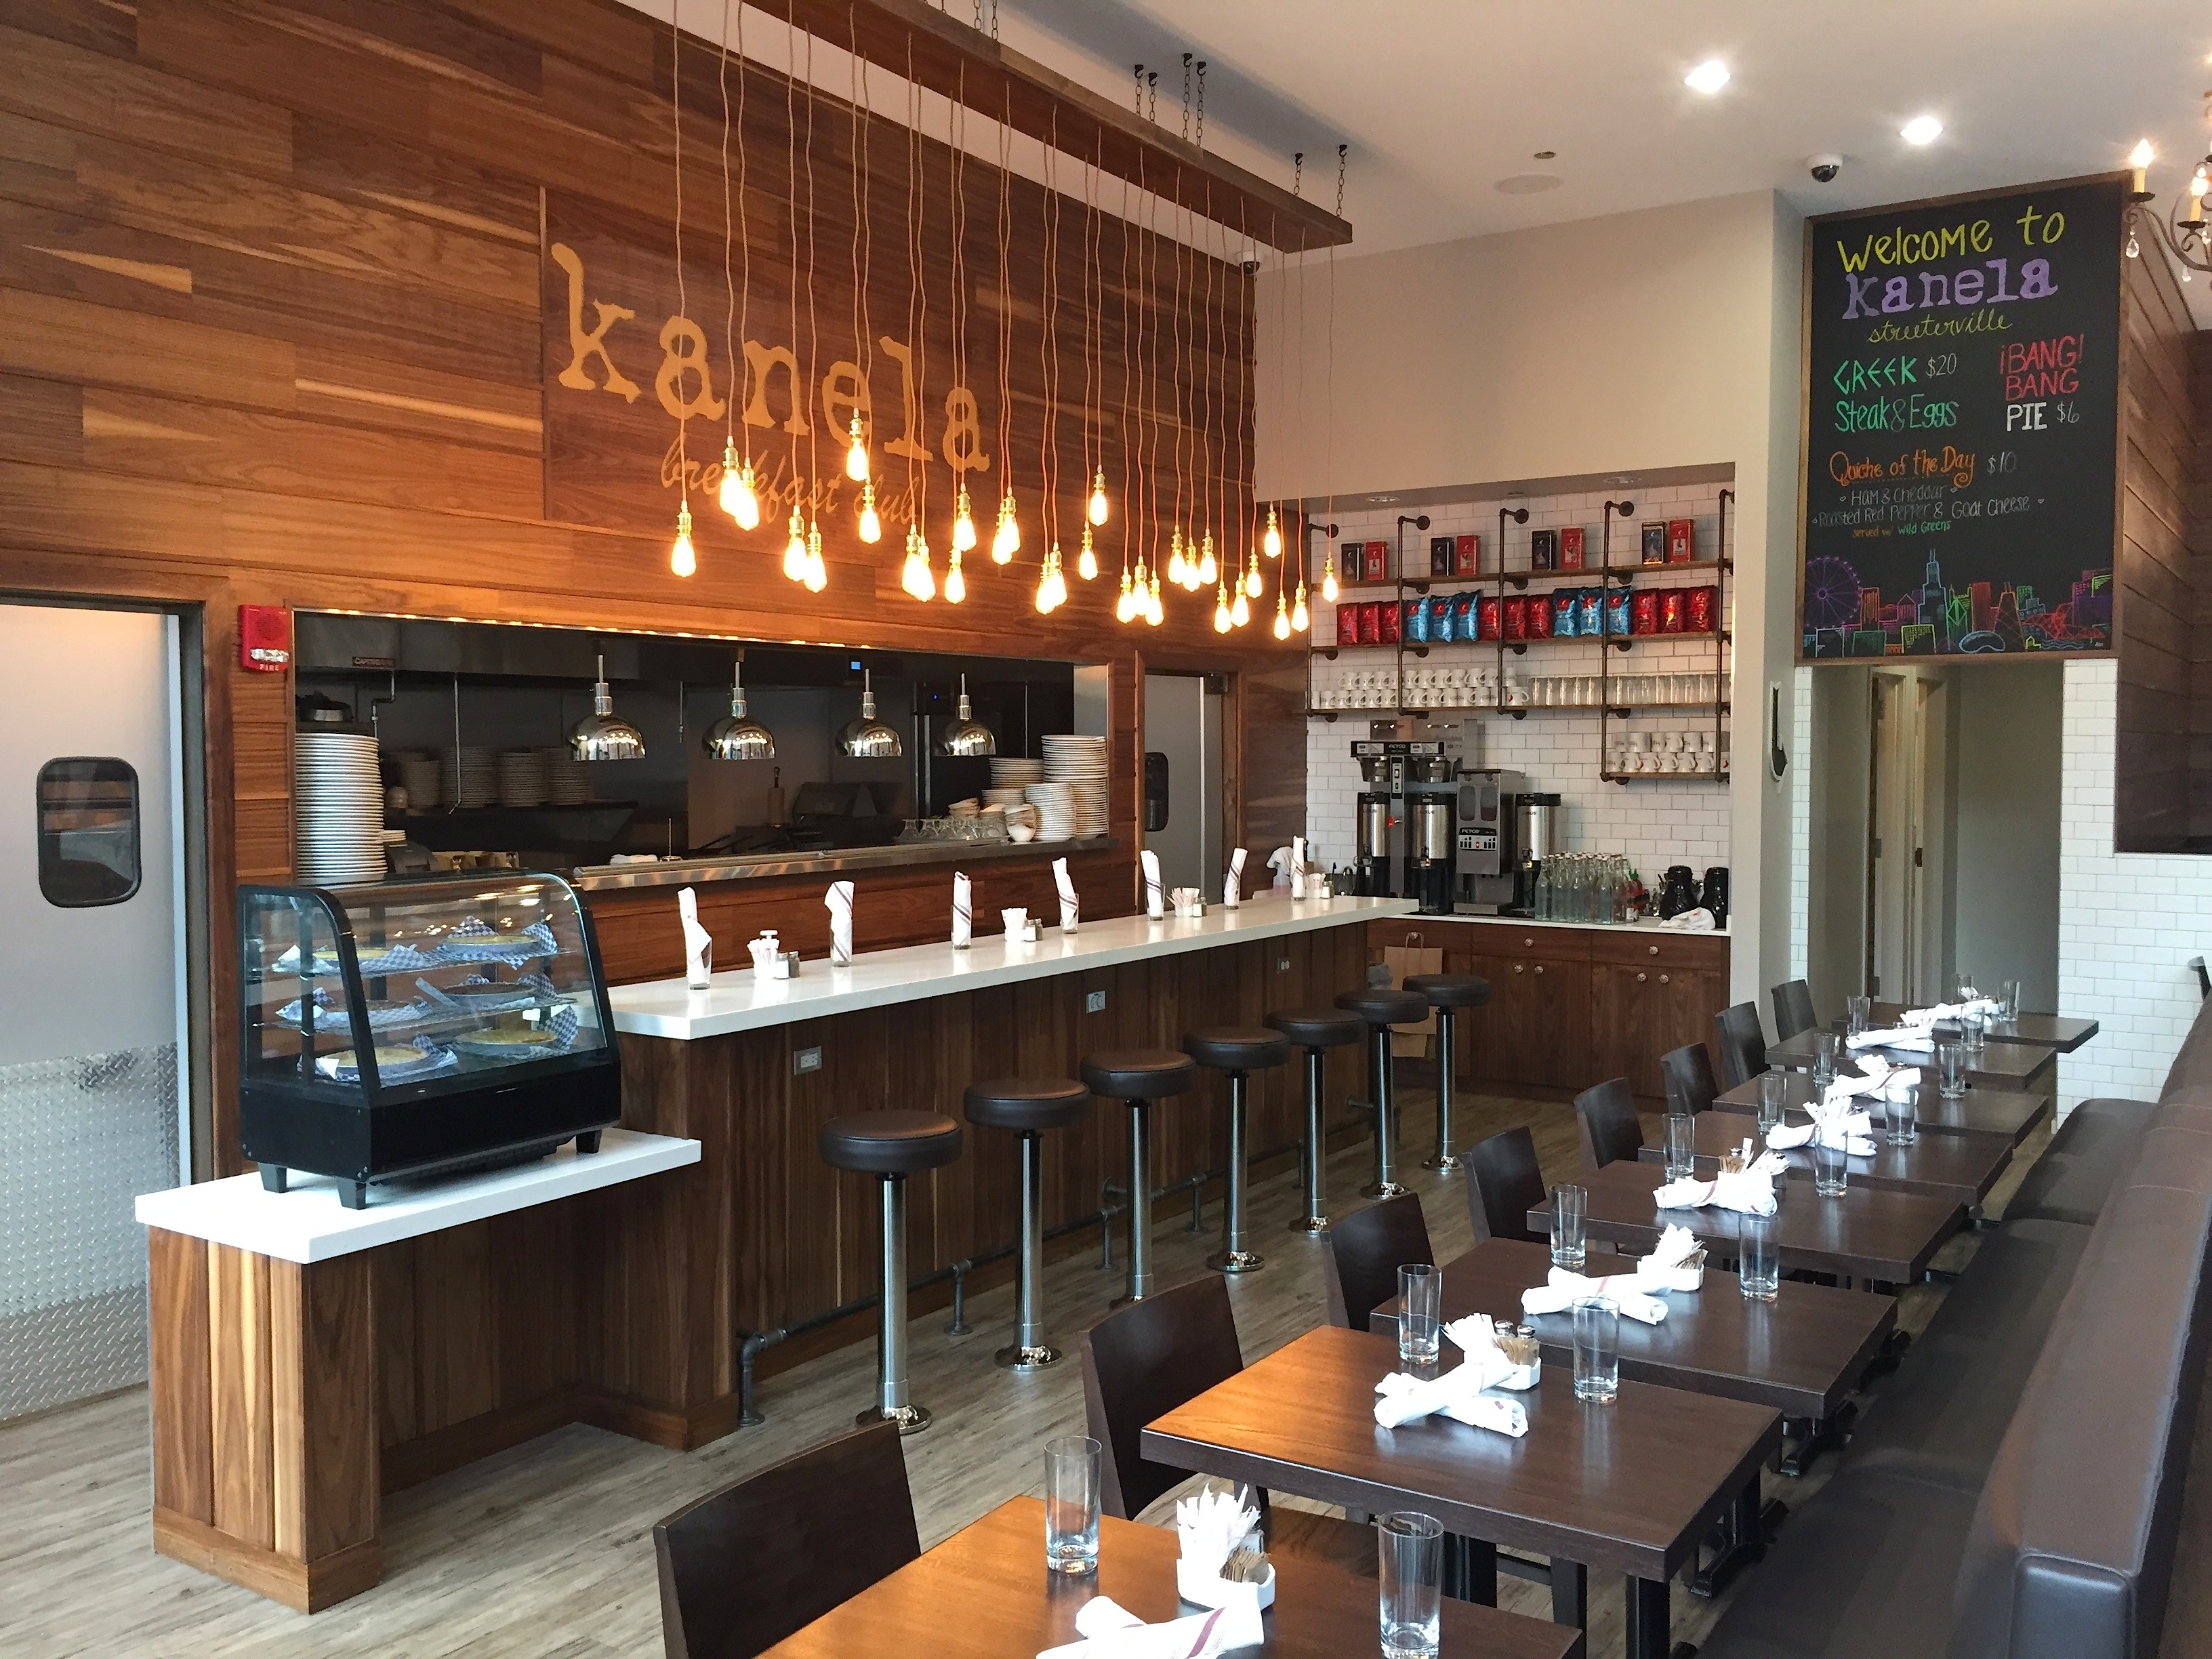 Kanela Breakfast Club Opens in Streeterville  Chicago Food Magazine